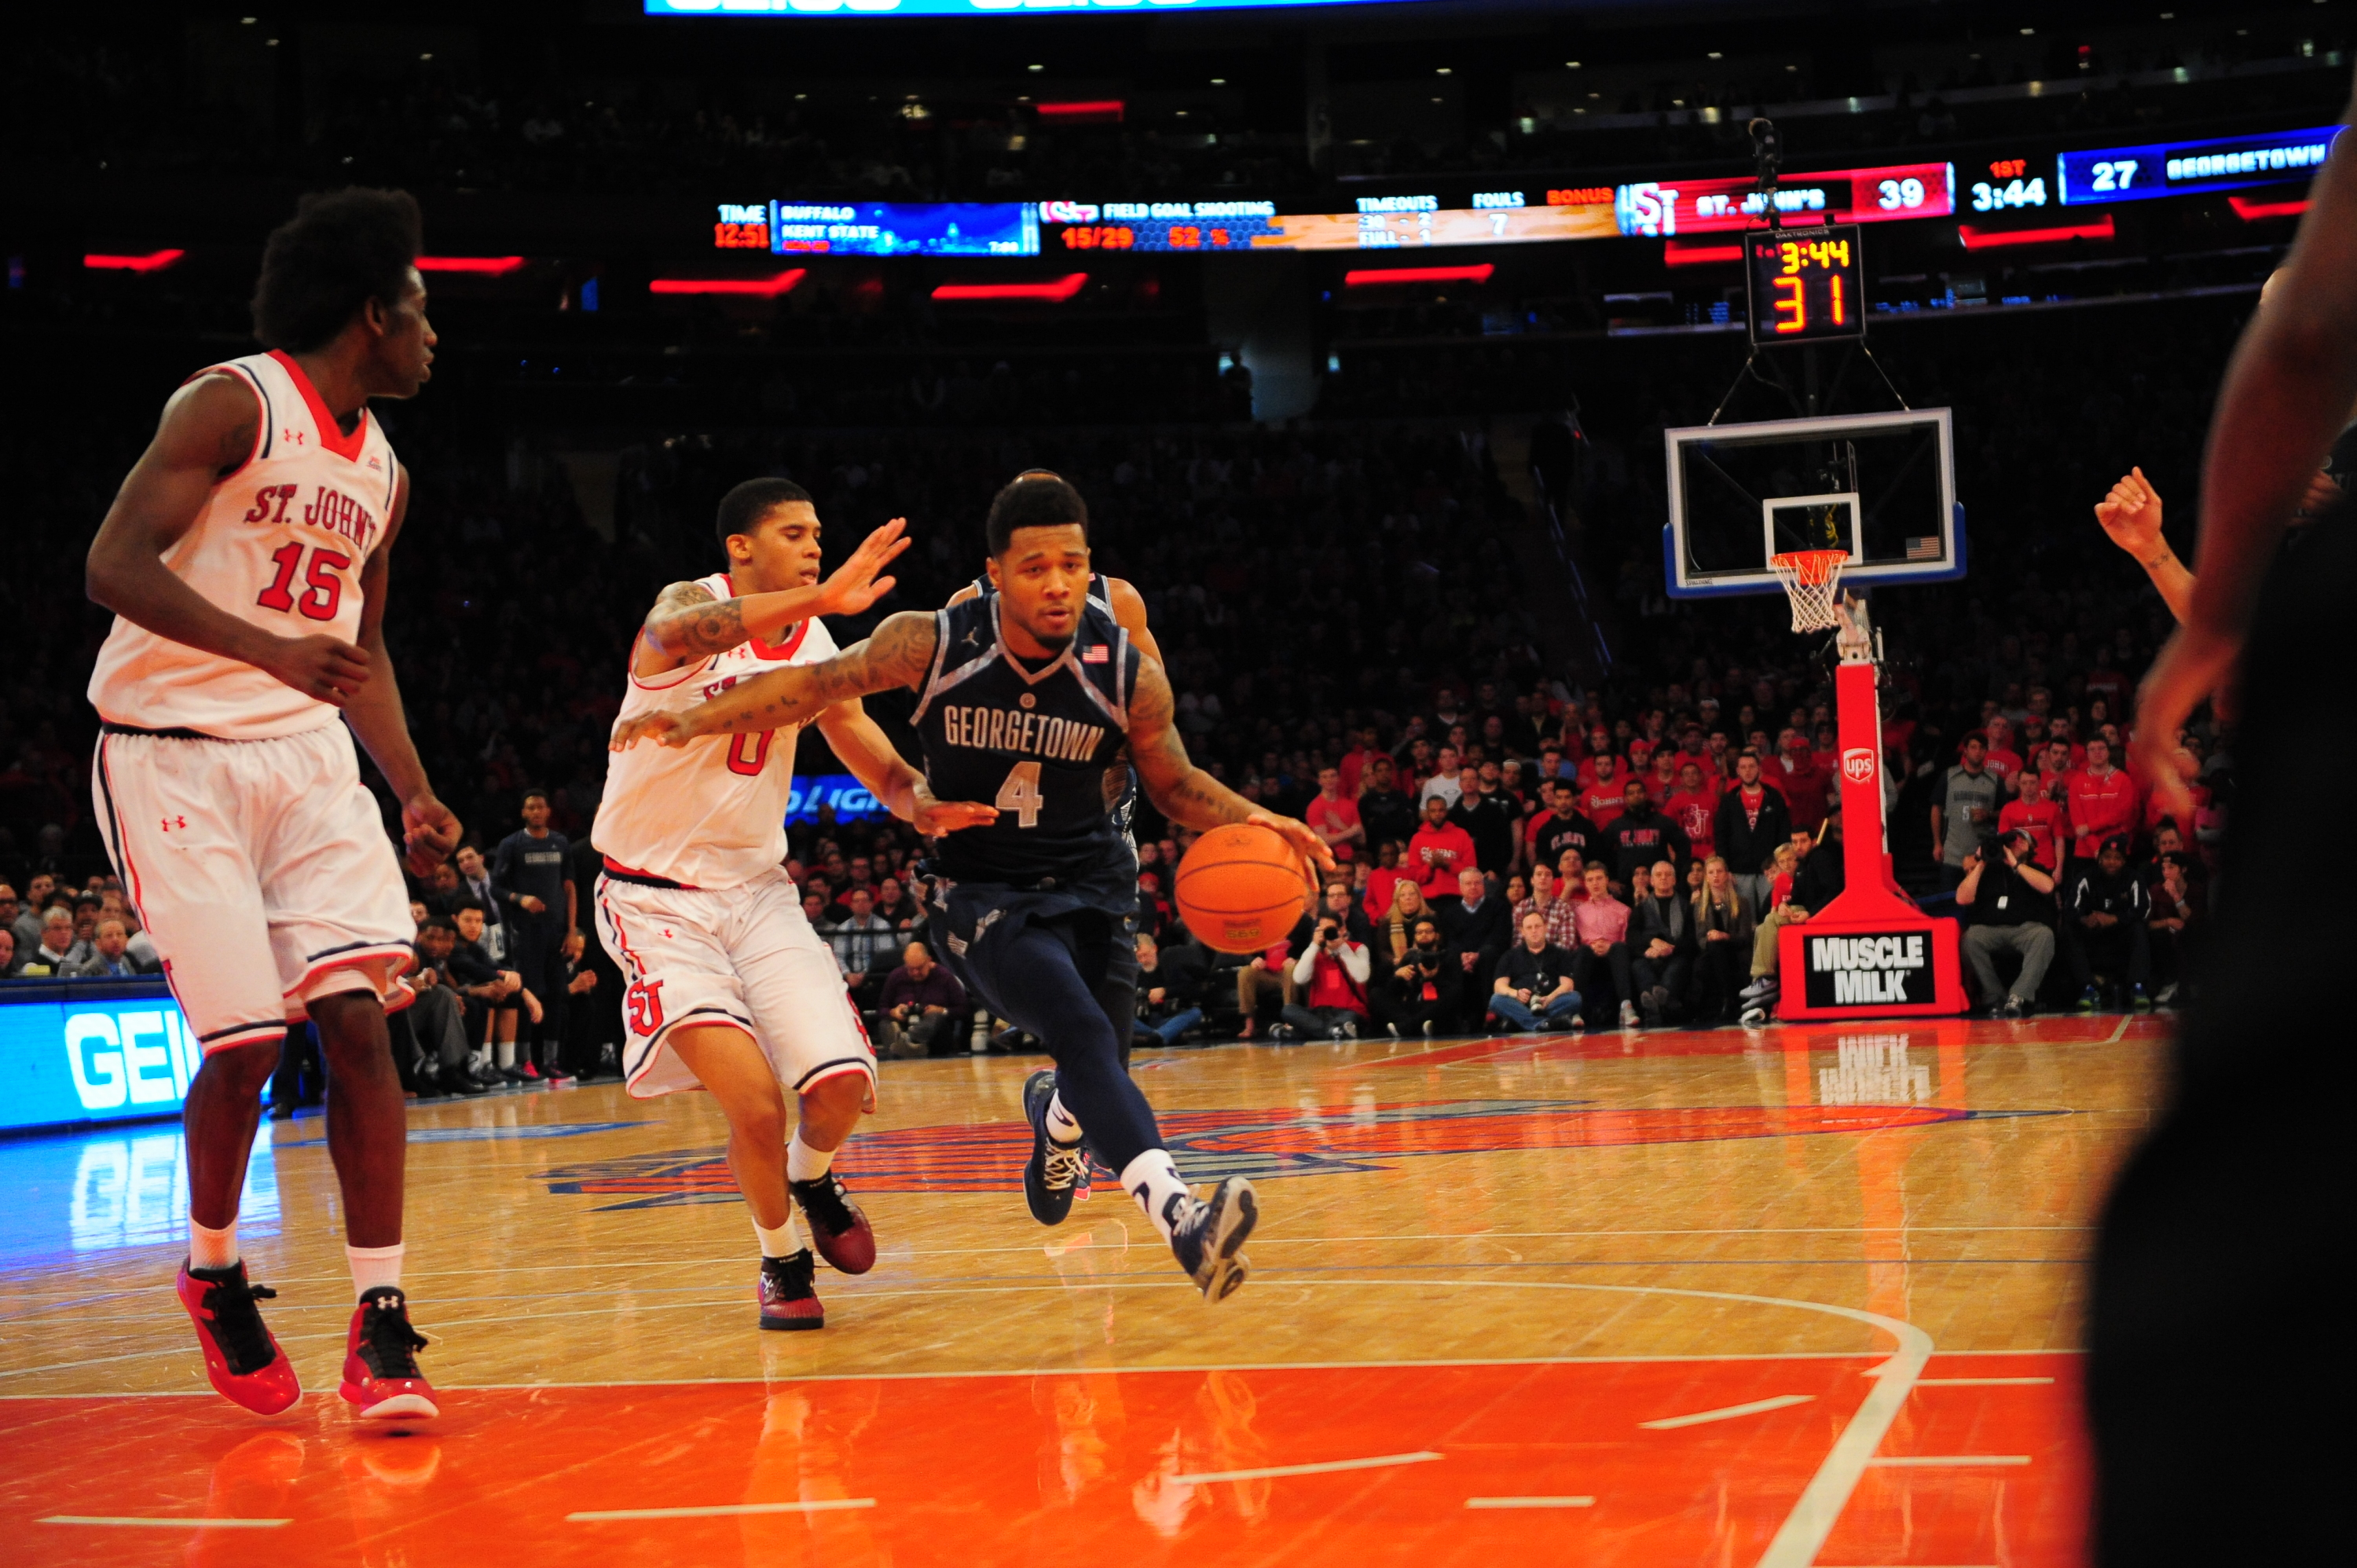 Junior guard D'Vauntes Smith-Rivera scored 29 points in Georgetown's loss to St. John's.